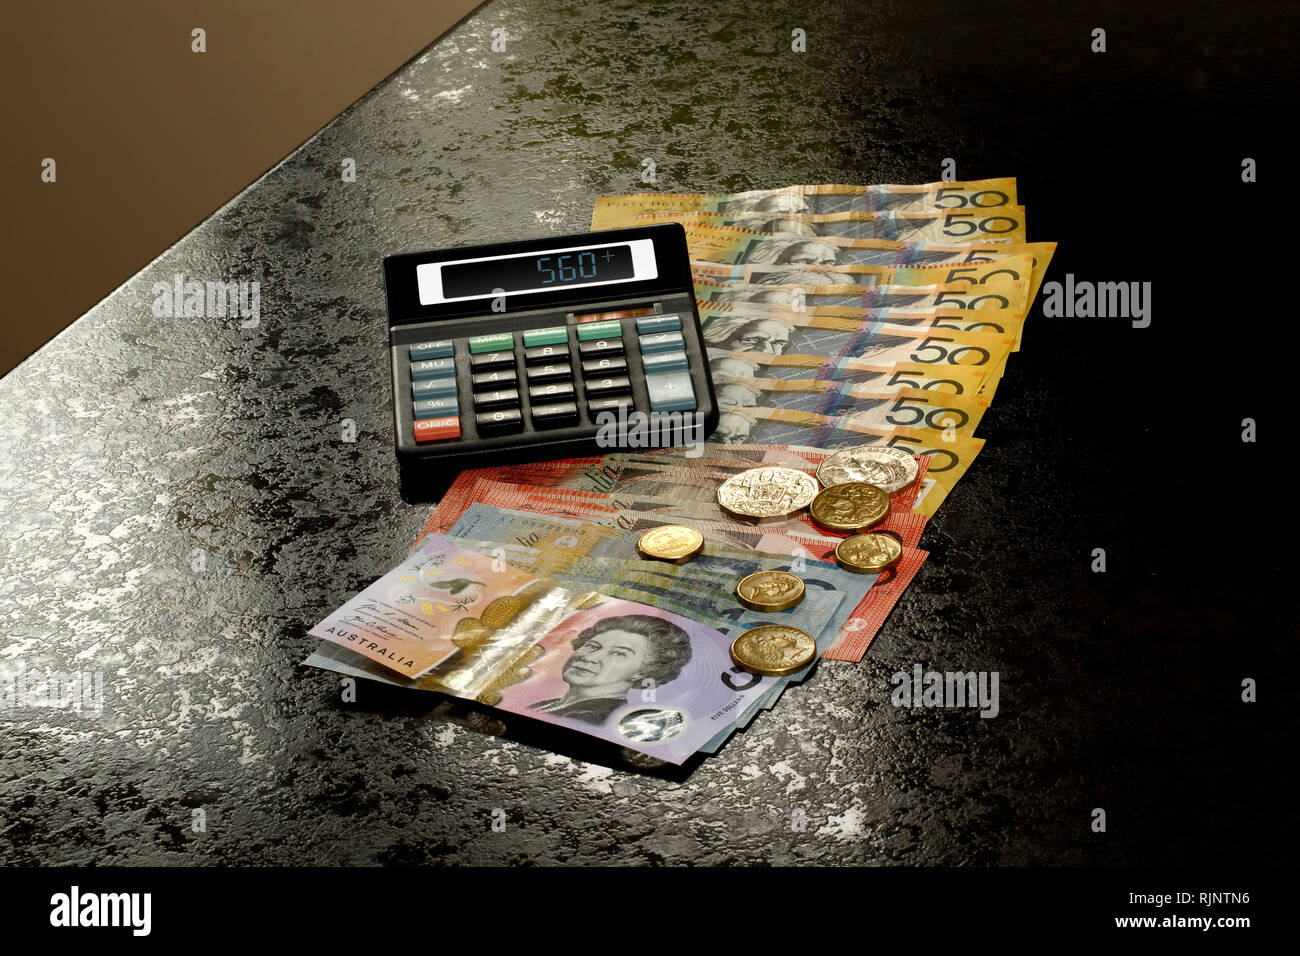 Australian Dollars and coins on a kitchen counter with calculator Stock Photo